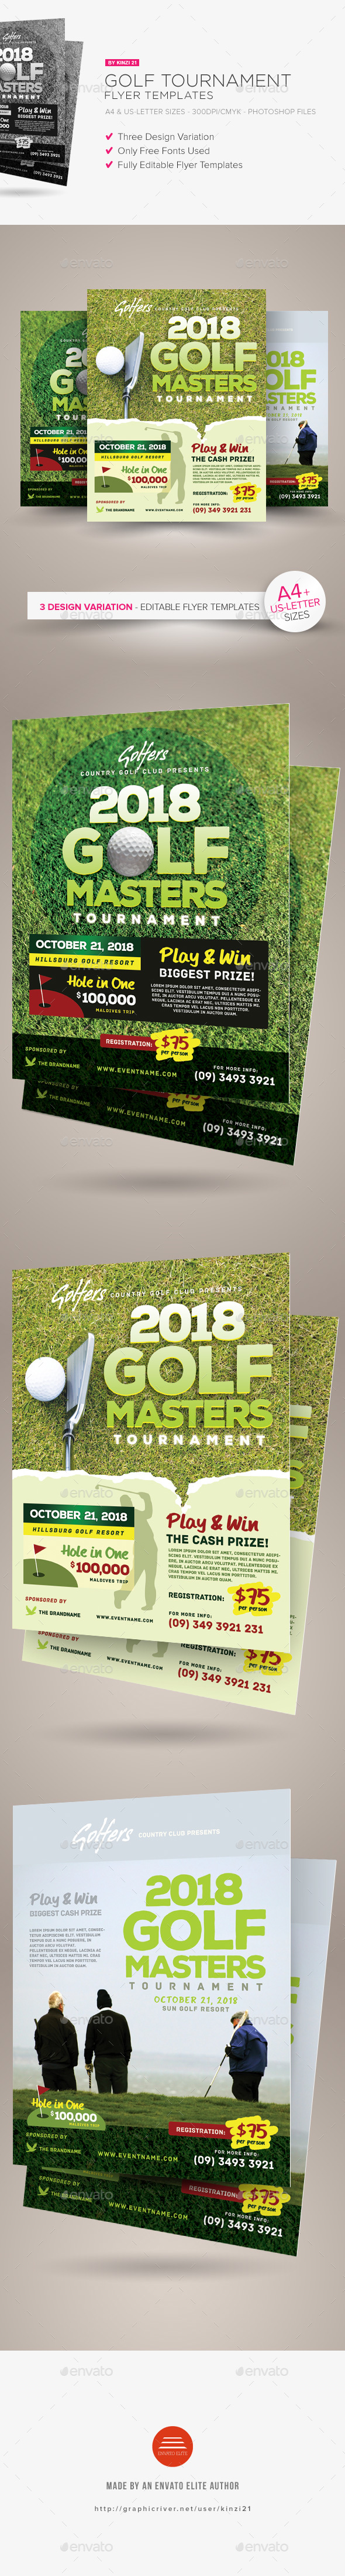 Golf Tournament Flyer Templates   Sports Events